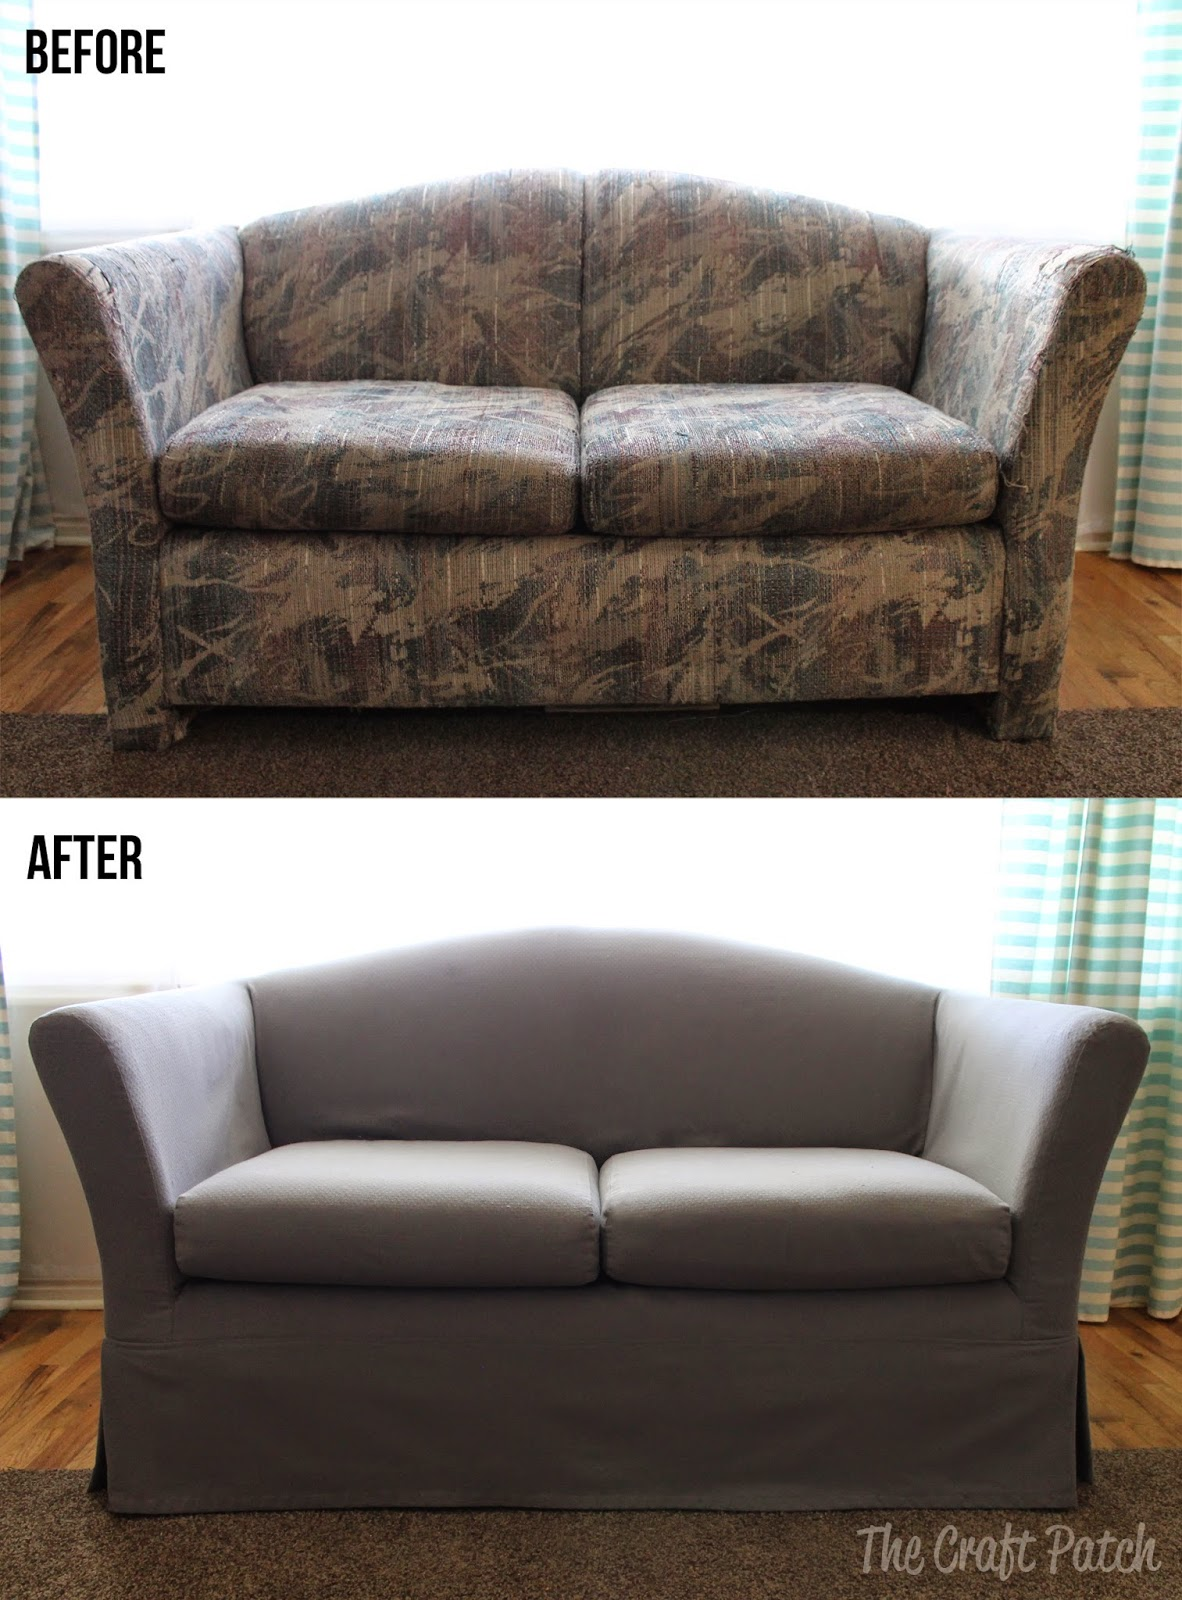 The Craft Patch The Saving Of An Ugly Couch